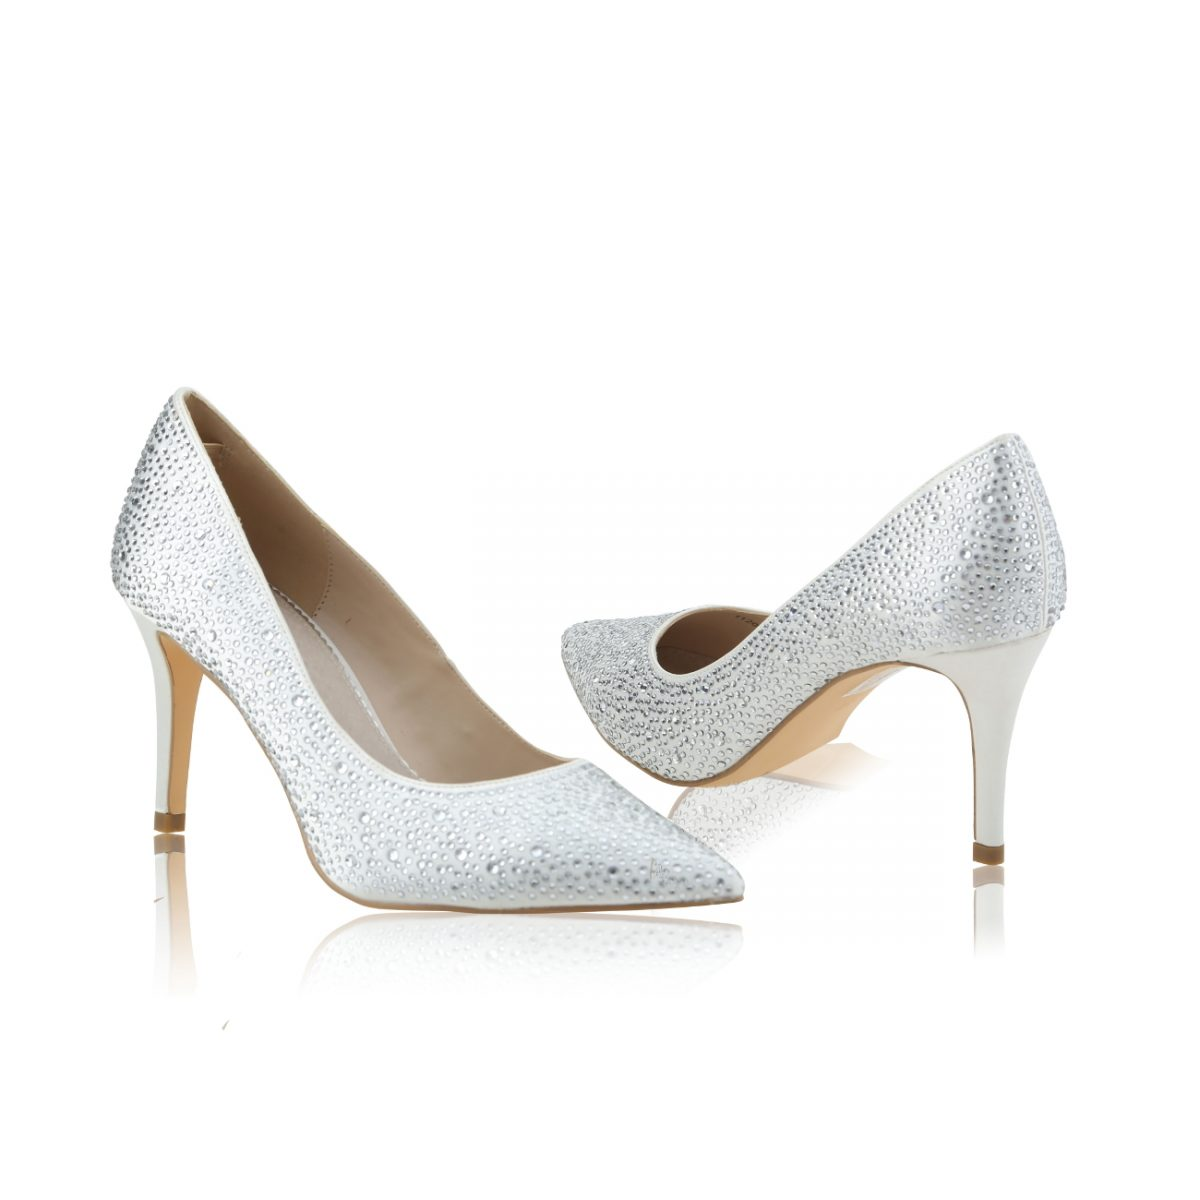 Perfect Bridal Stara Shoes - Crystal Encrusted Ivory Satin